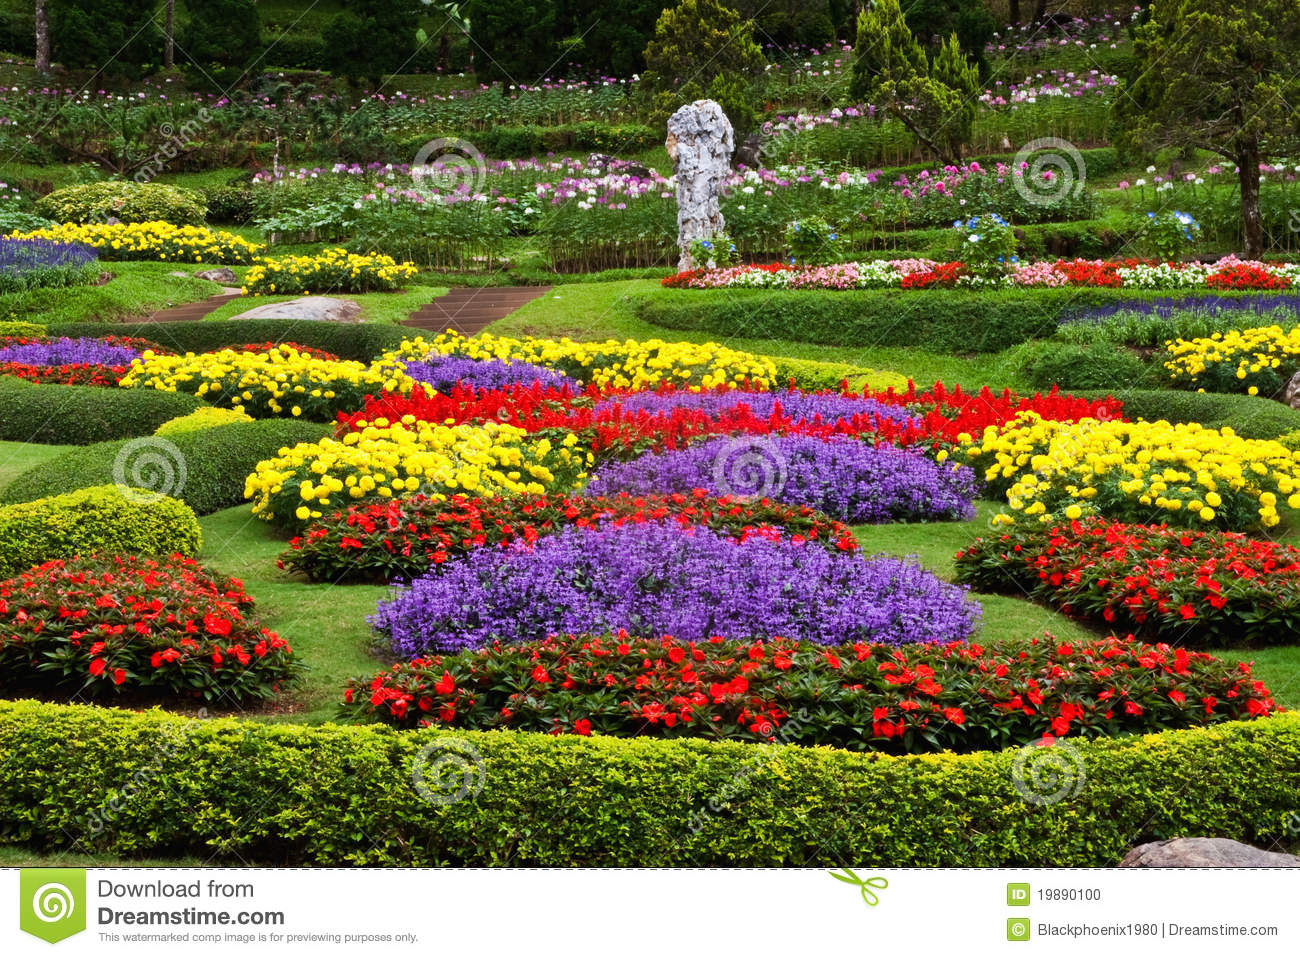 flower garden stock photo image of garden grow landscape 19890100. Black Bedroom Furniture Sets. Home Design Ideas